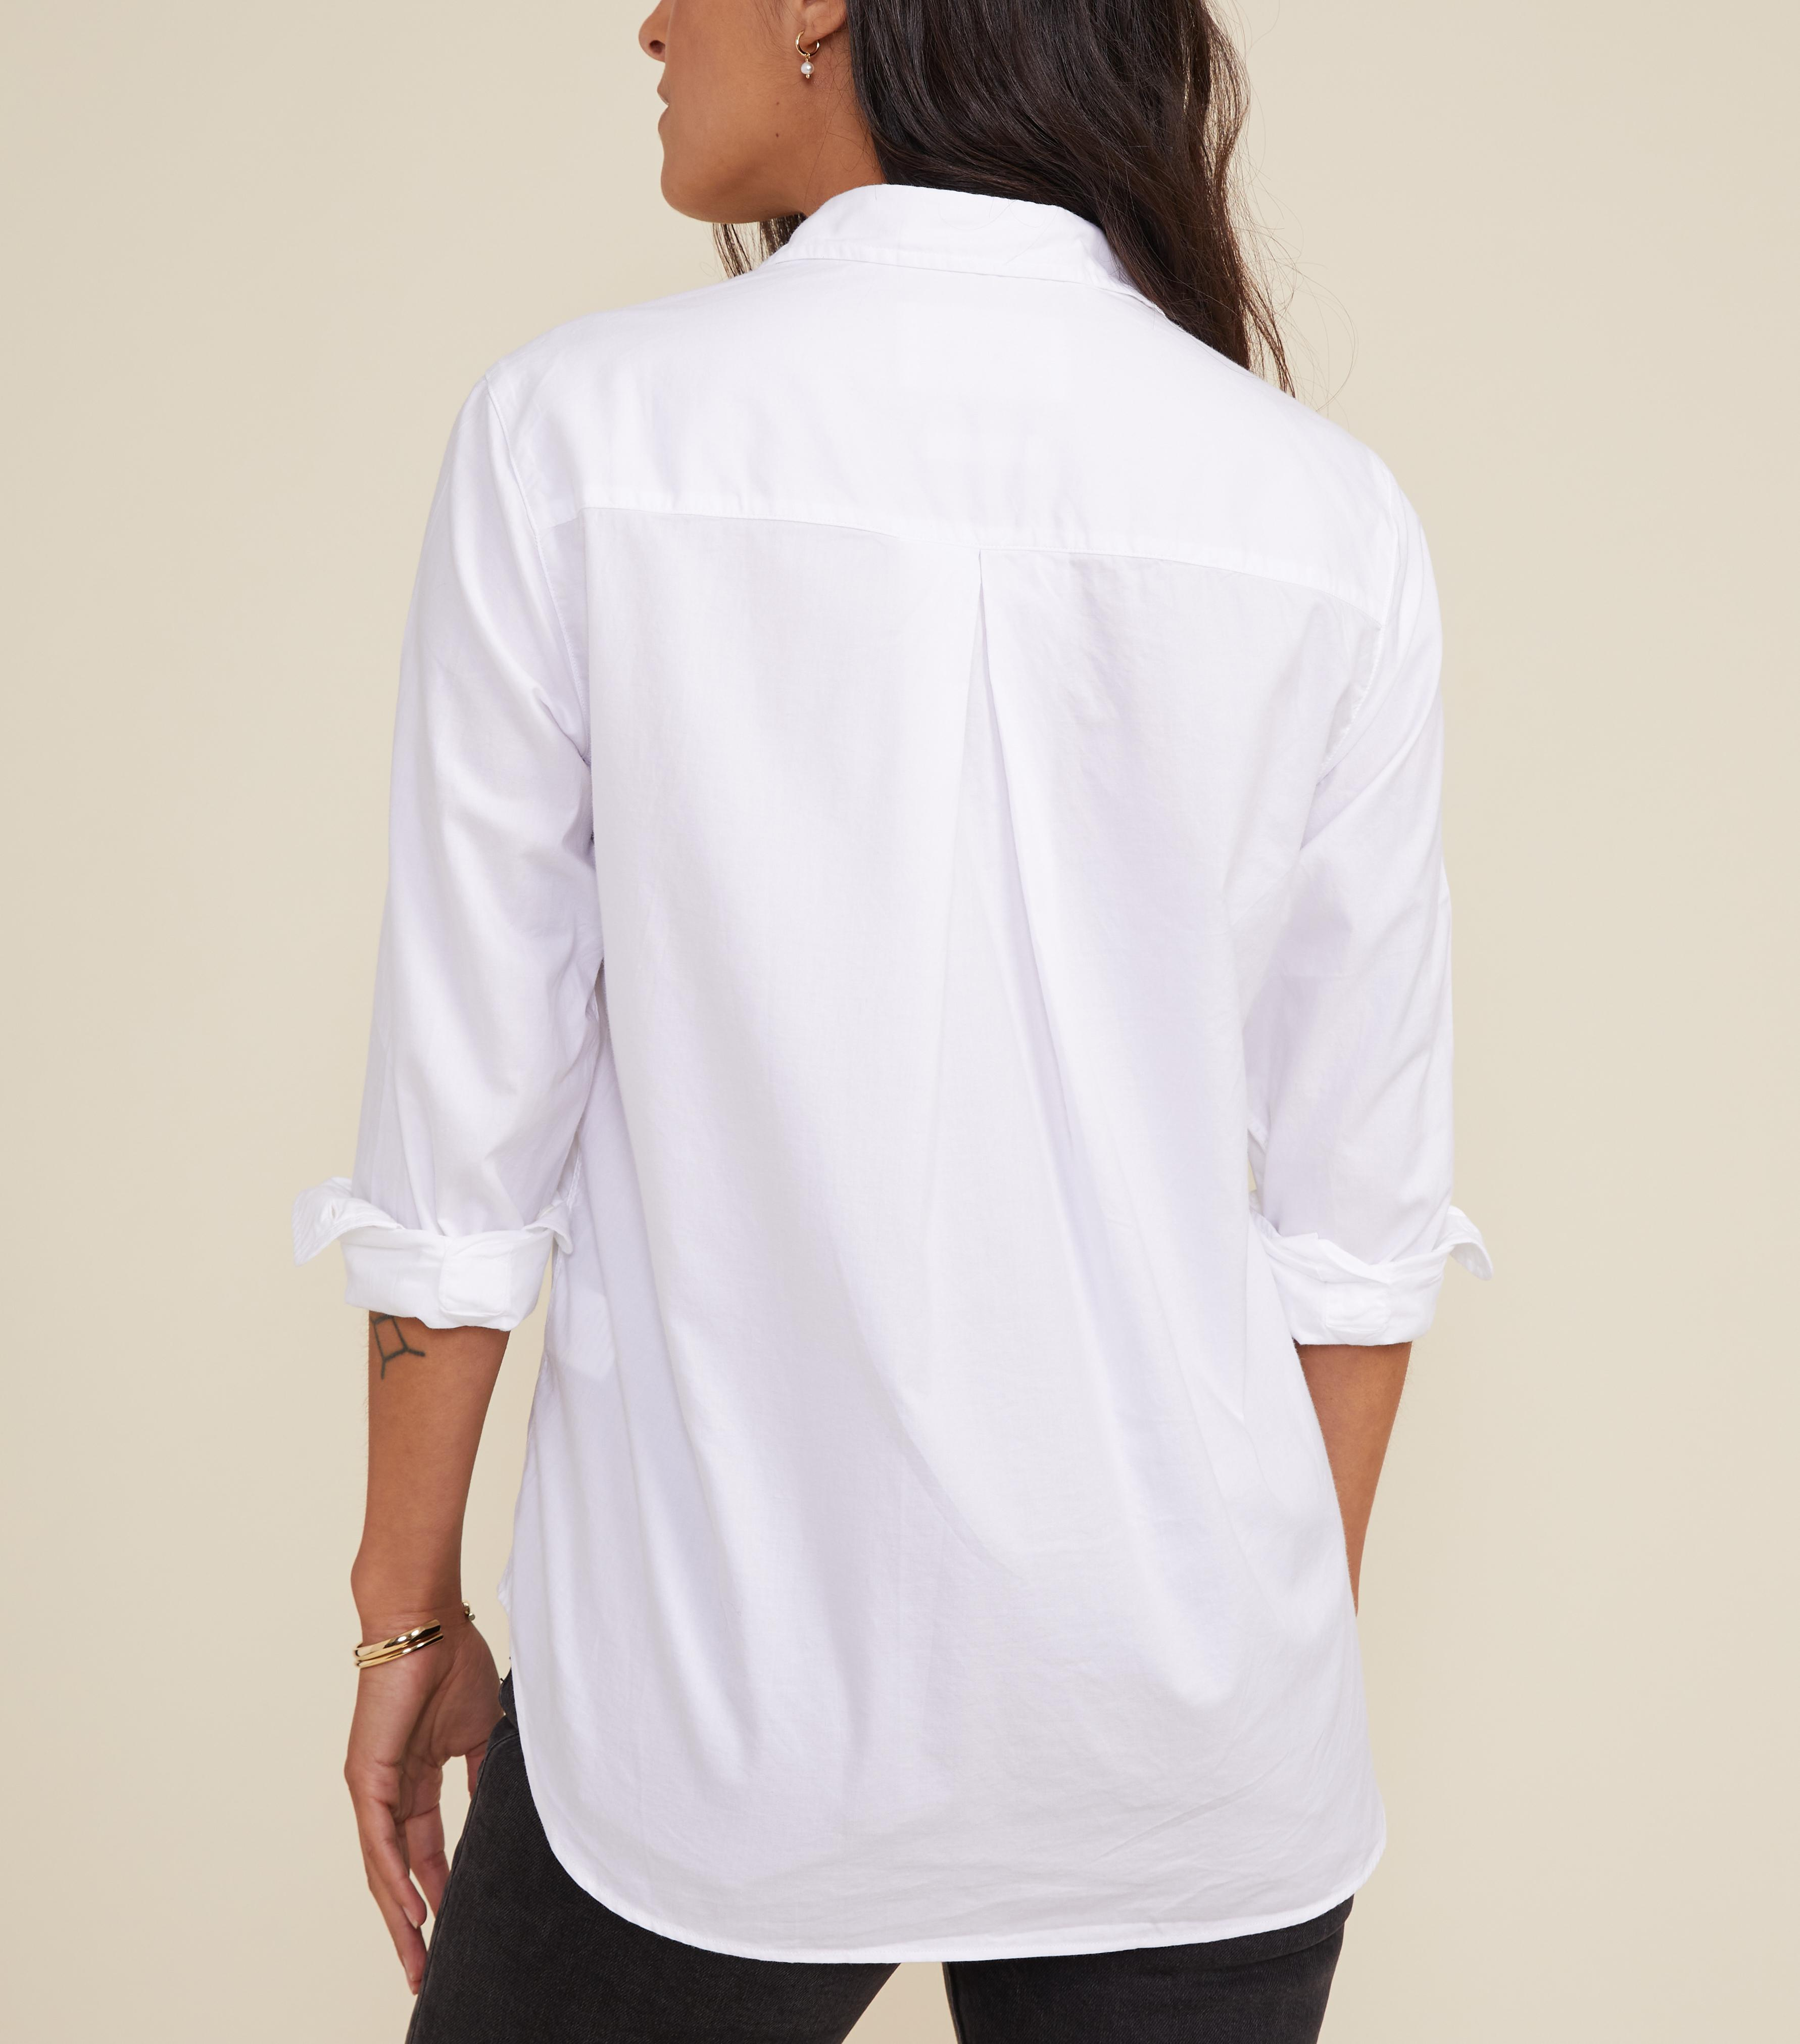 The Hero Button-Up Shirt Bold, Brushed Cotton 1